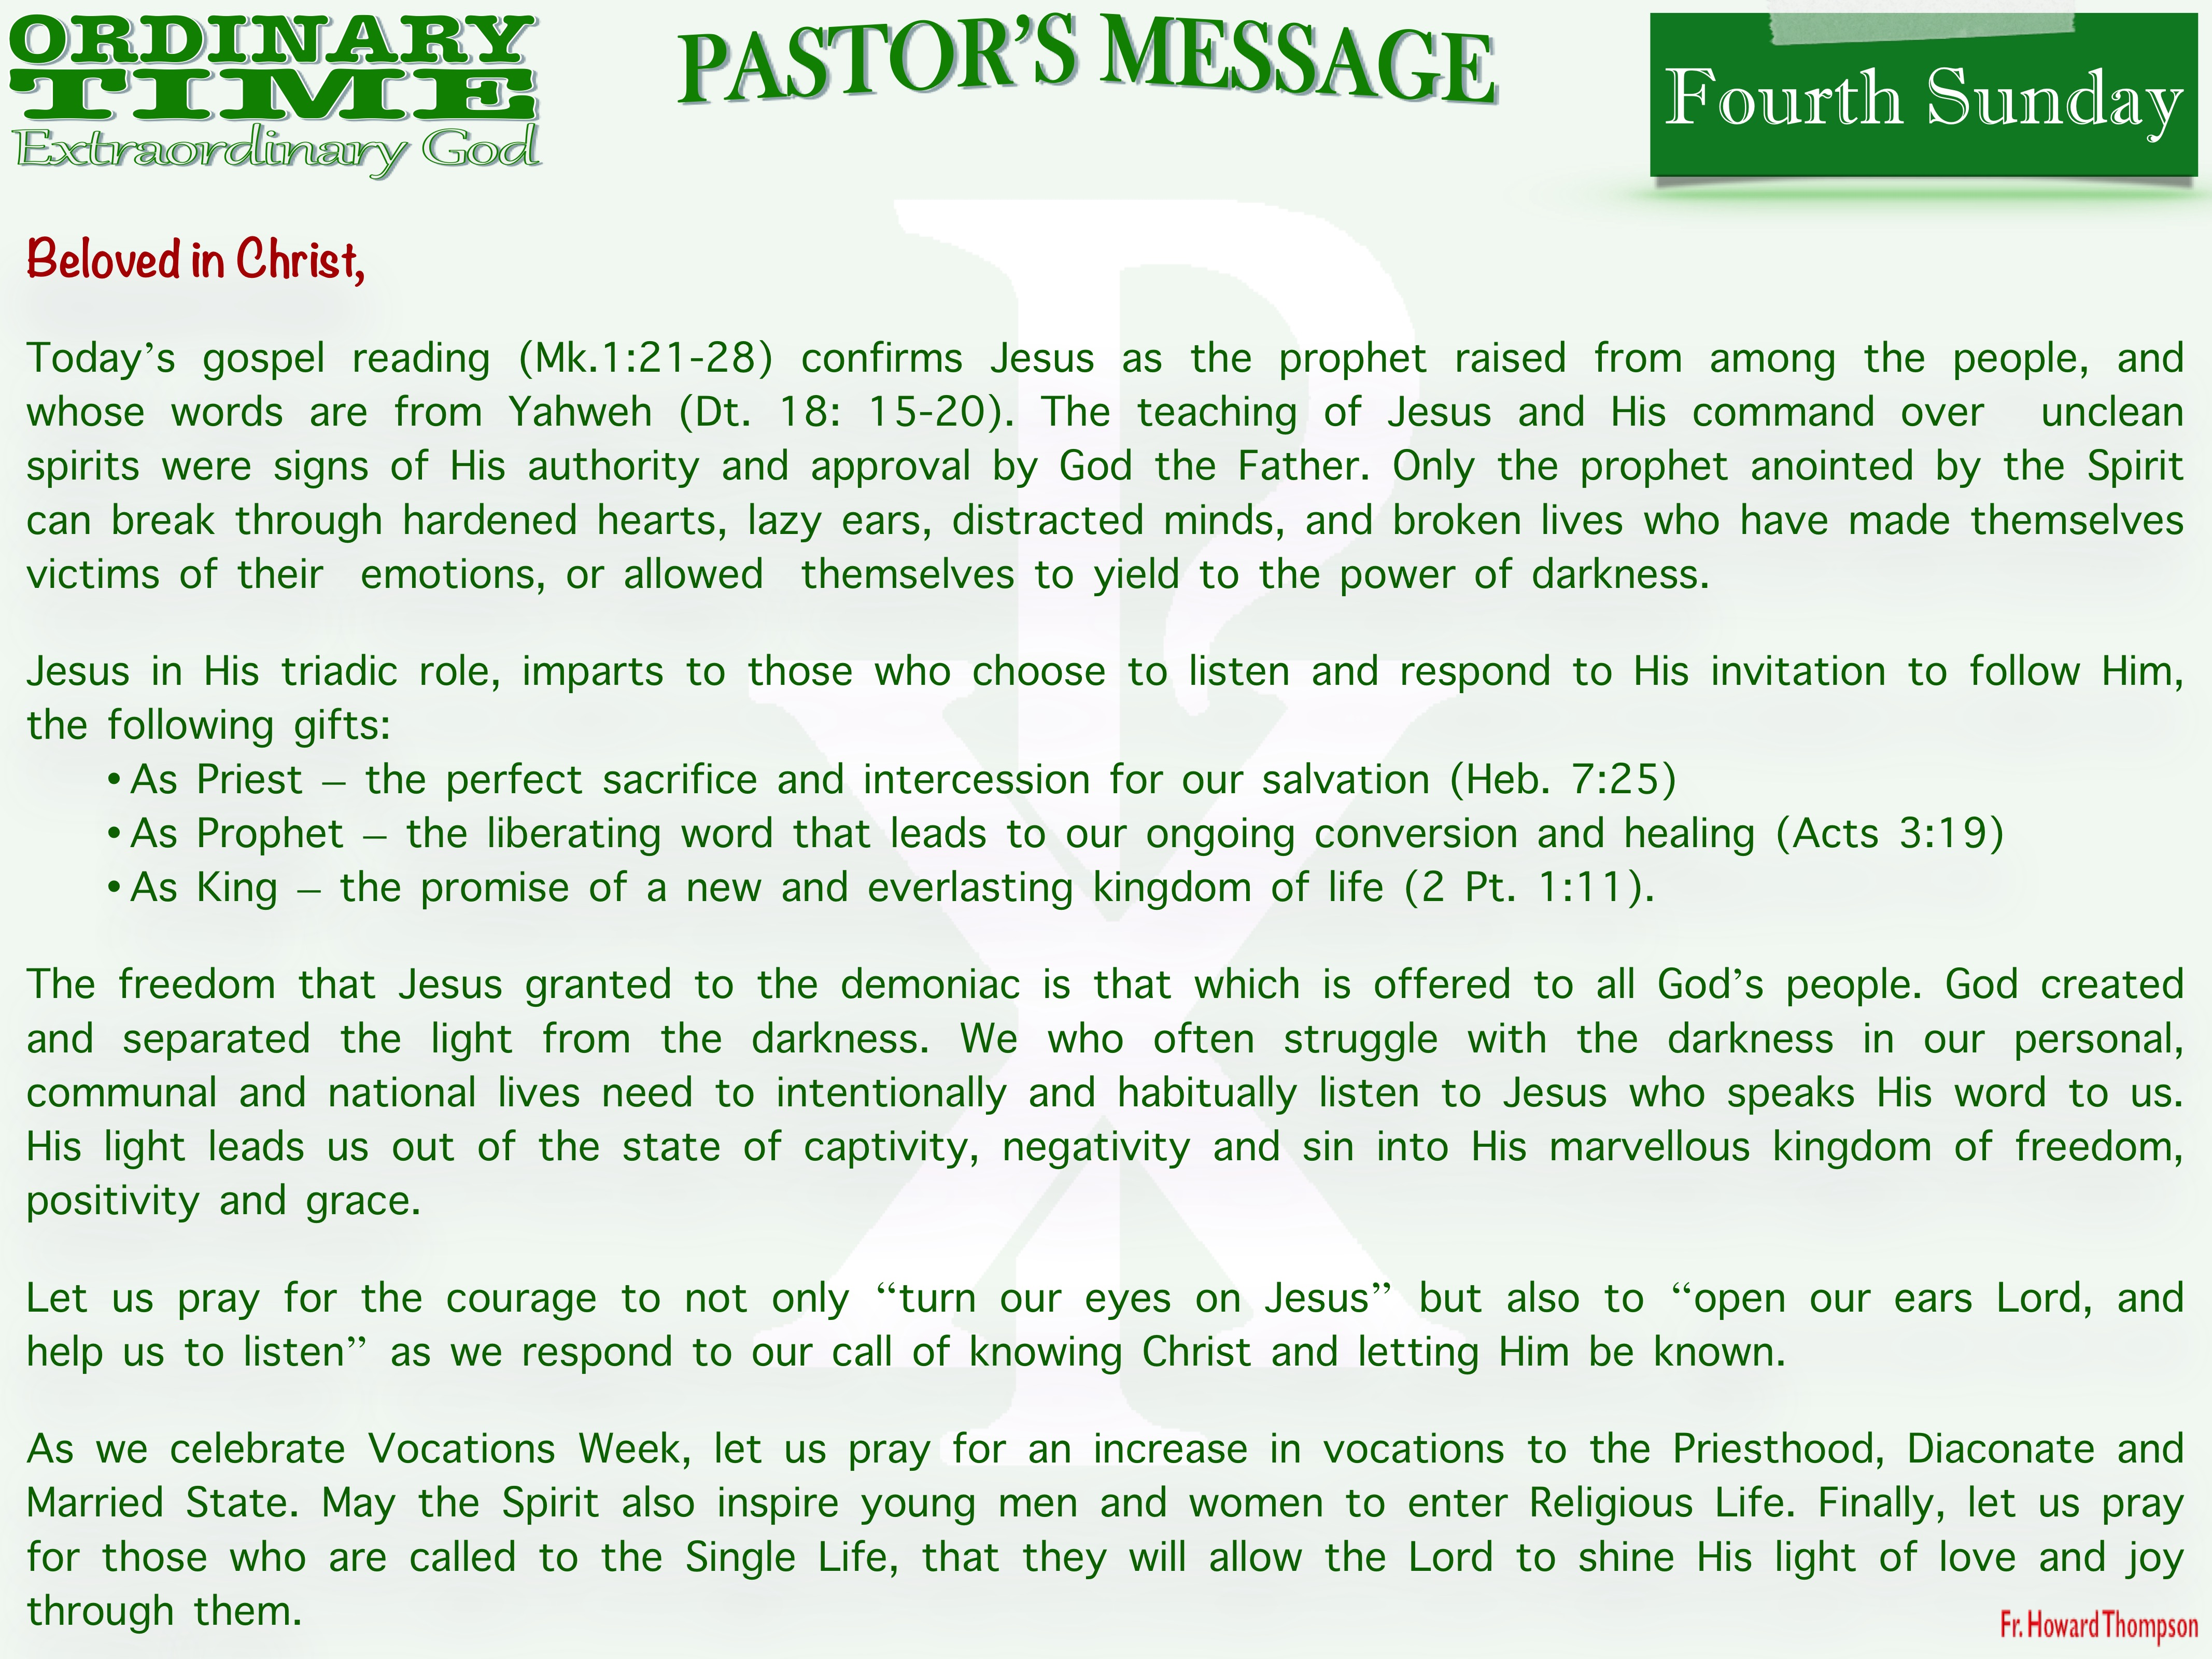 Pastor's Message - 03 Fourth Sunday in Ordinary Time_001